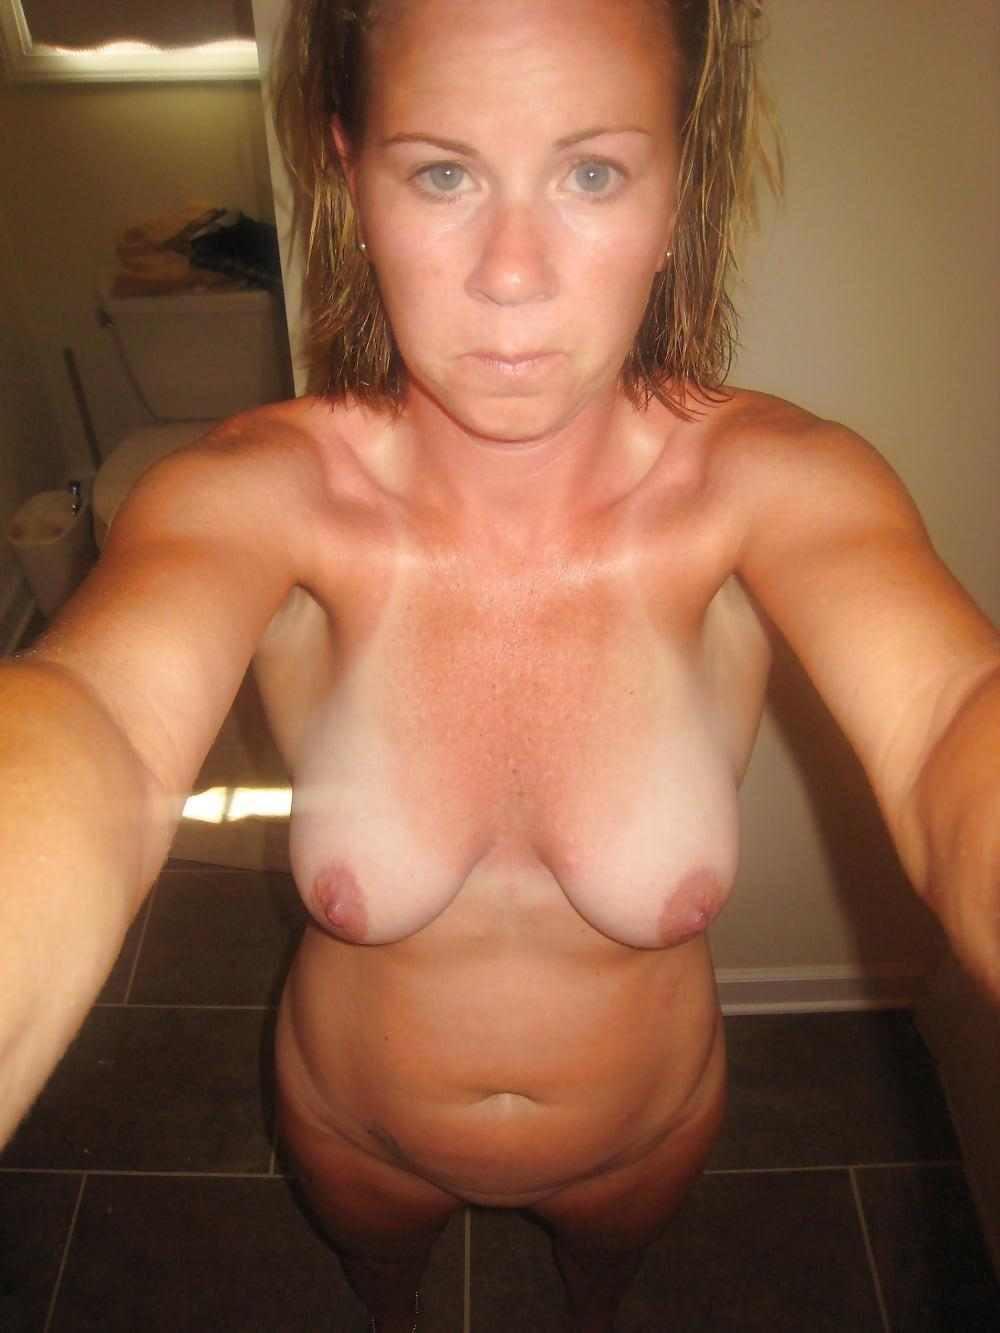 Naughty blonde wife taking naked bathroom selfie. Amateur MILF snapping selfies of her nice saggy tits